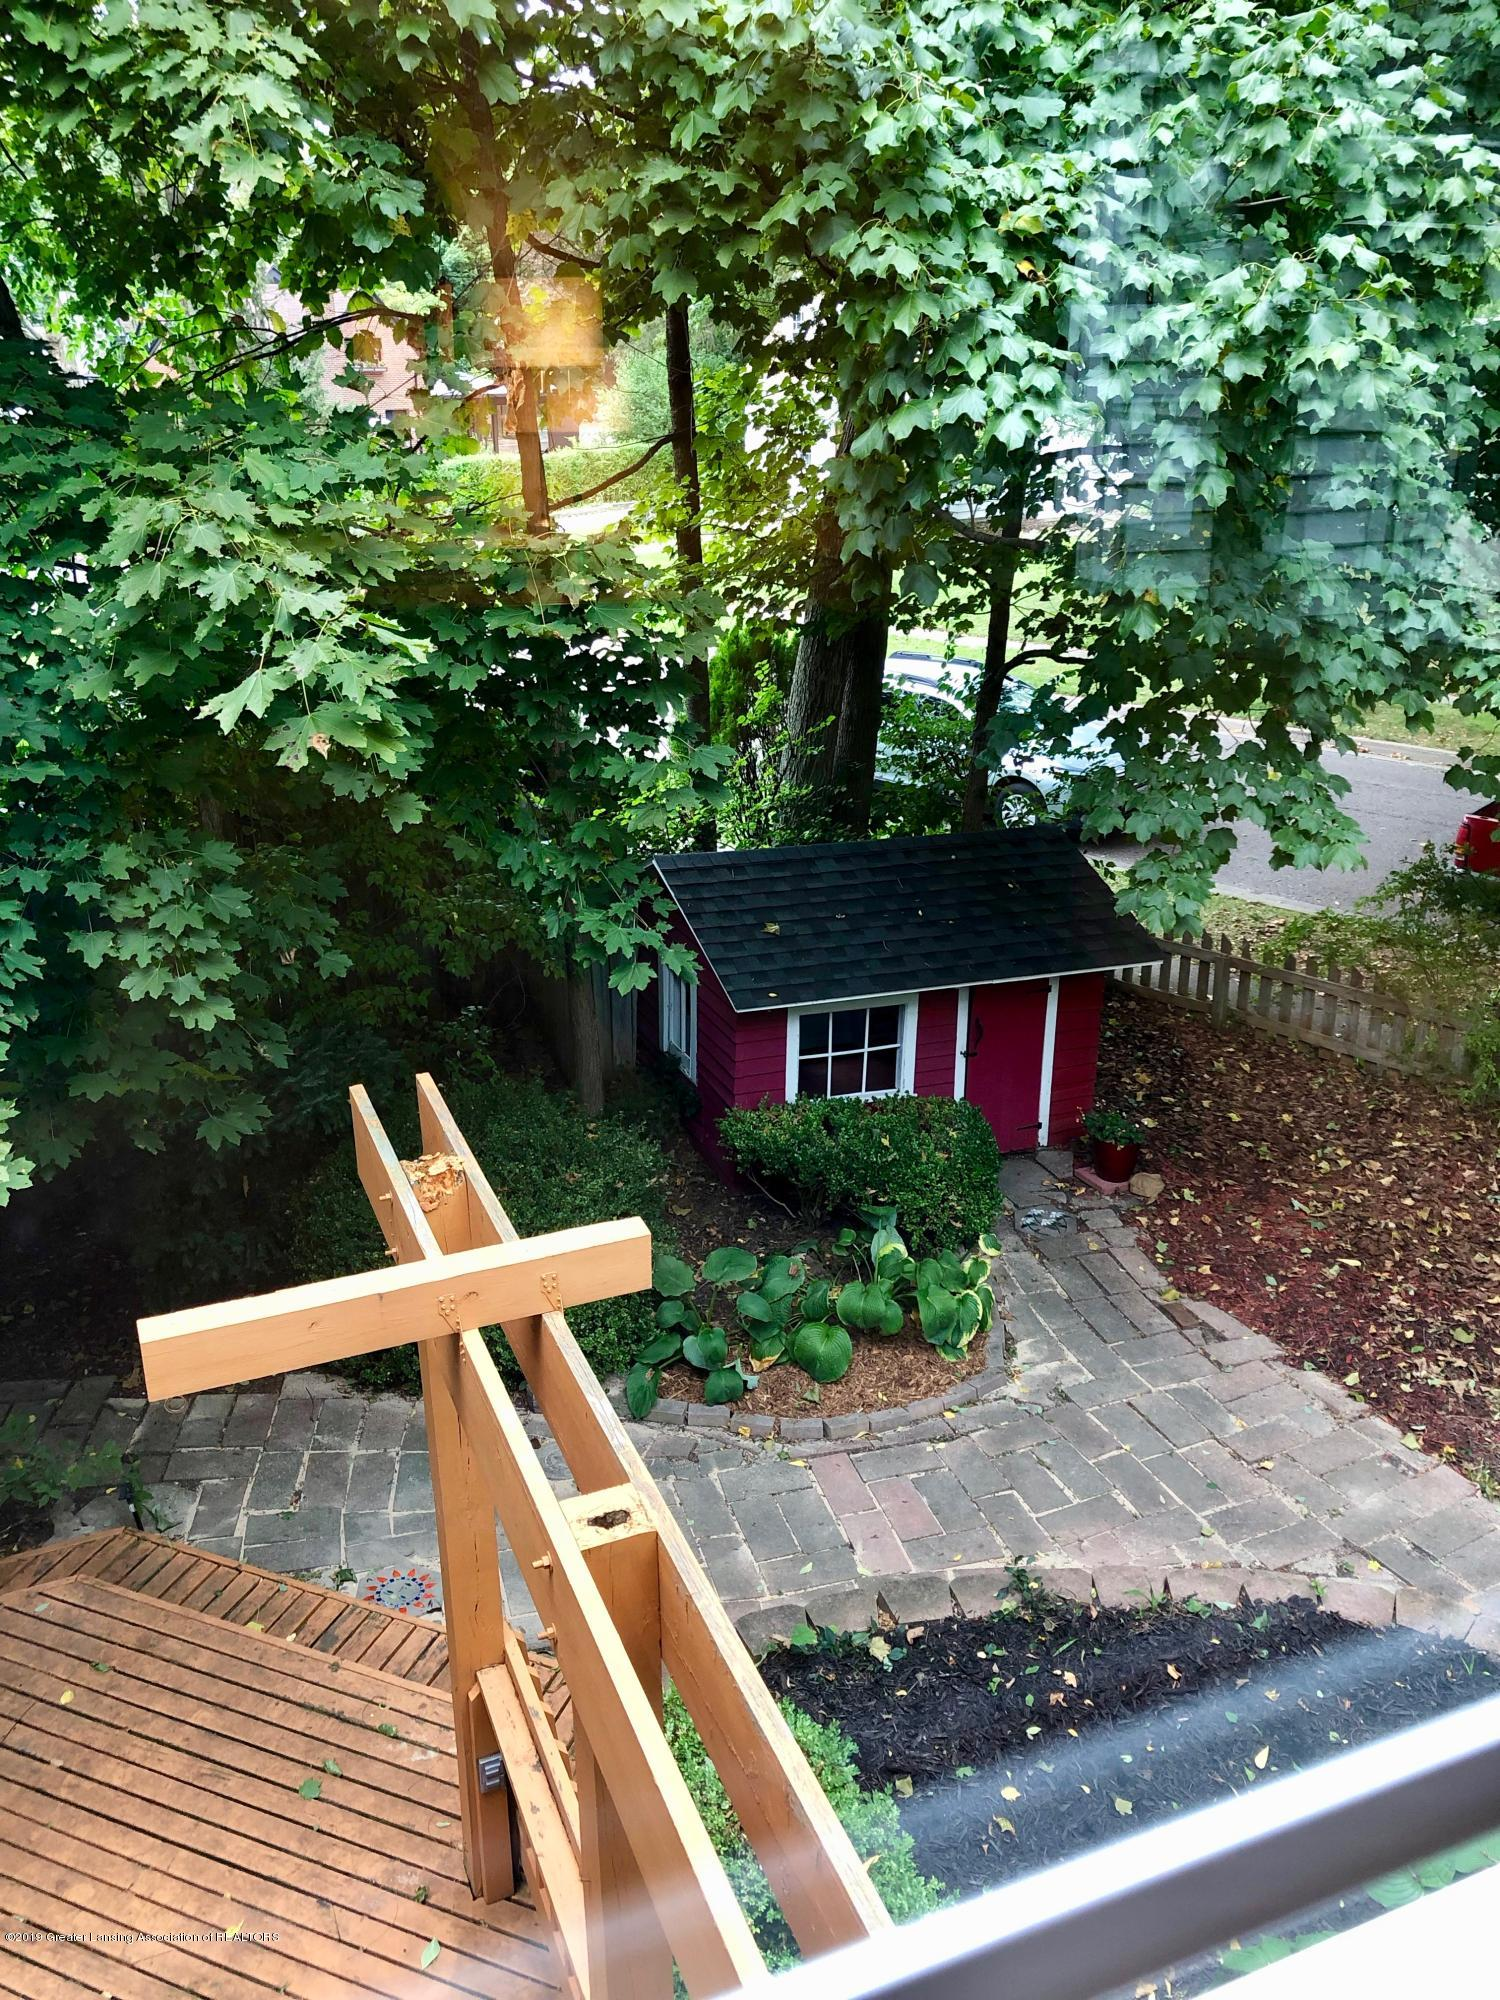 633 Butterfield Dr - Deck and Shed/Playhouse - 50